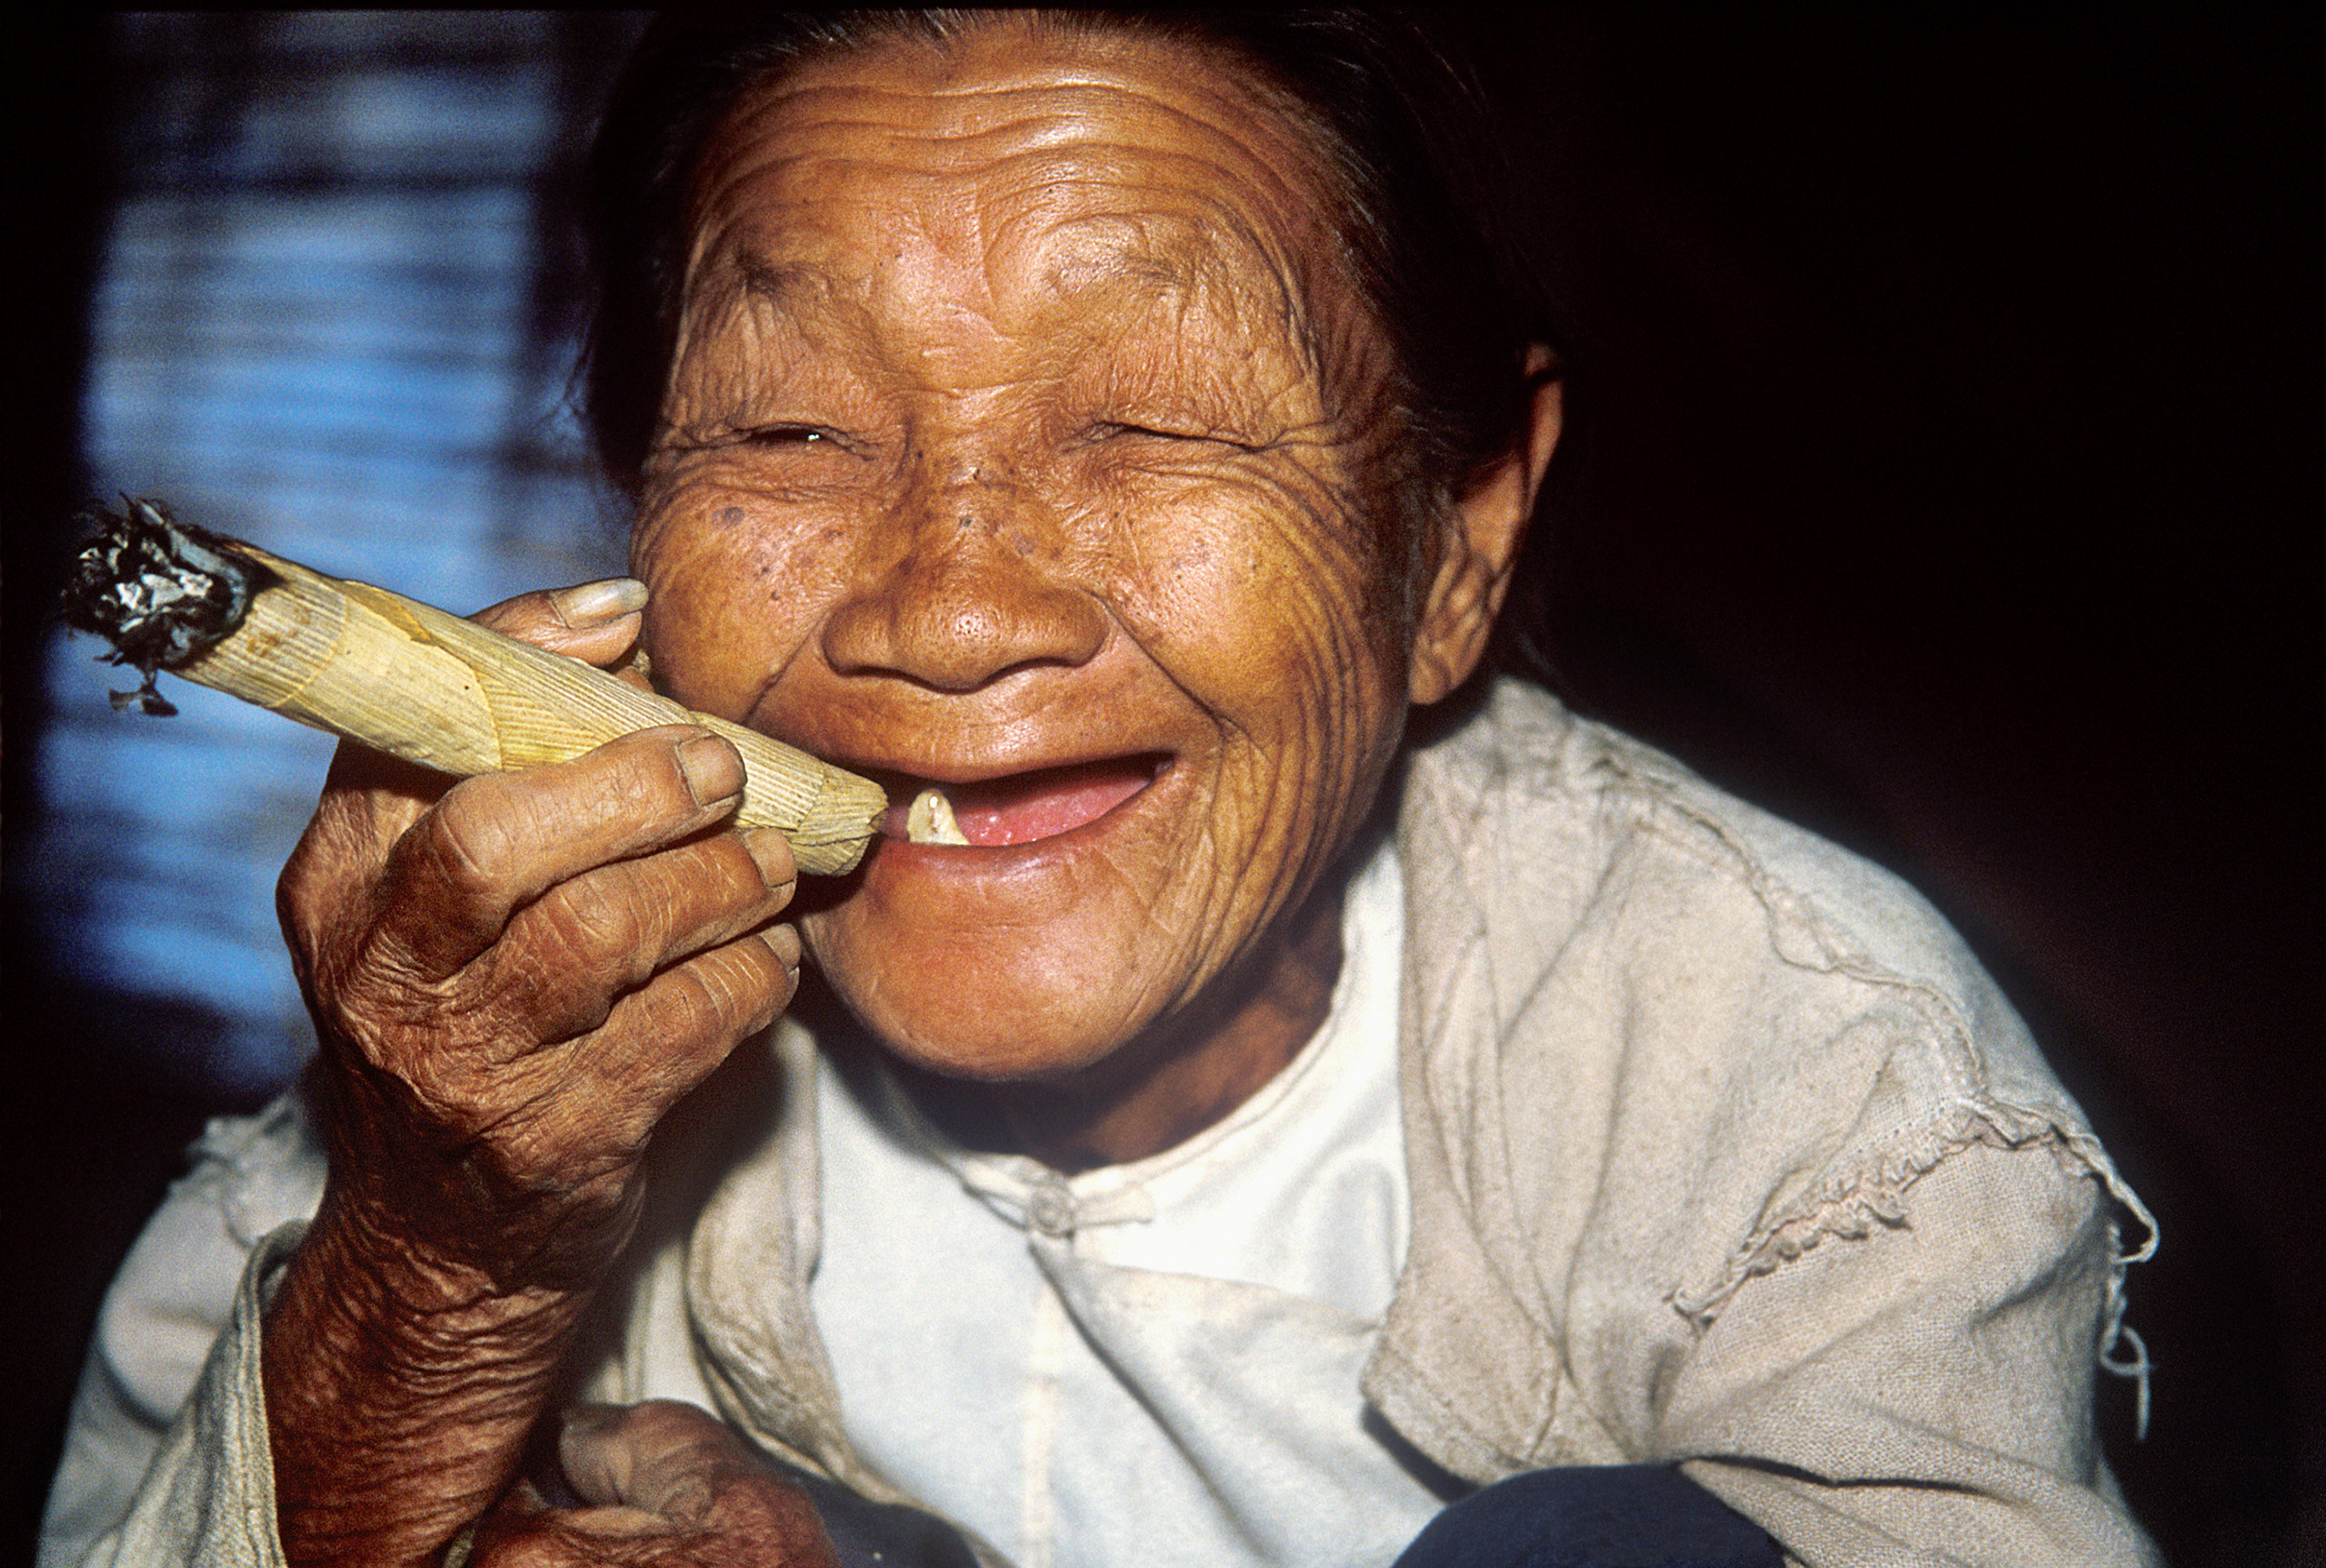 [UNVERIFIED CONTENT] the cigar appears to be rolled with dried corn leaves. it takes so little to be happy. one tooth left in